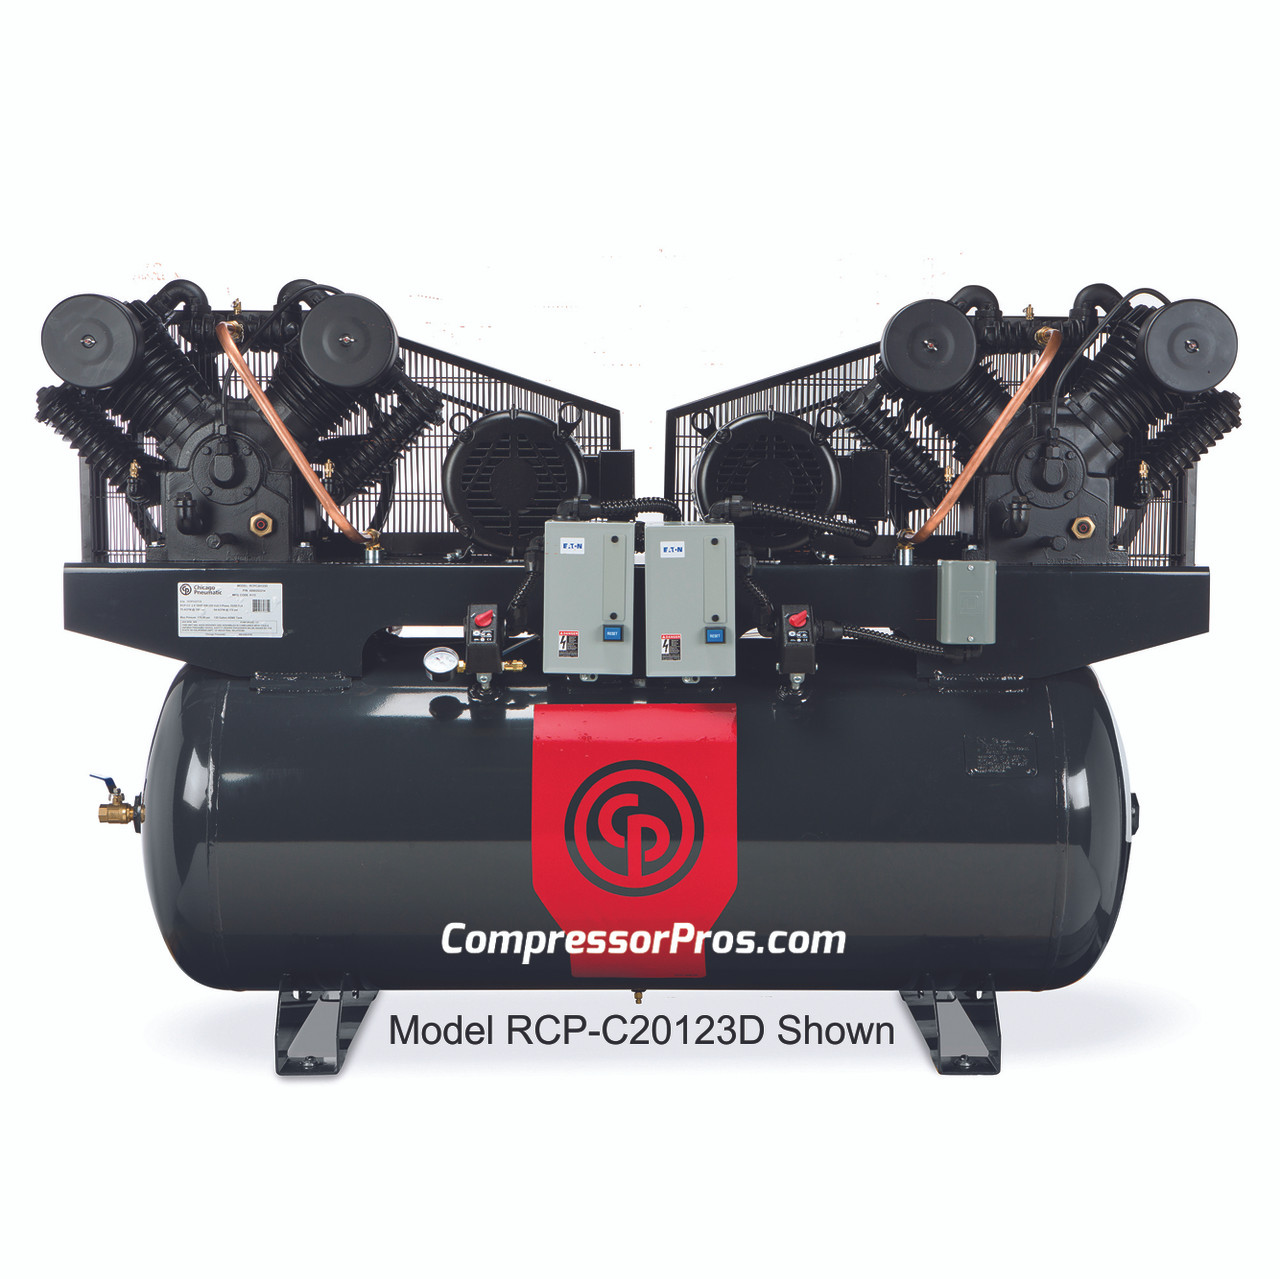 Chicago Pneumatic RCP-C20123D4 2 x 10 HP 460 Volt Three Phase Two Stage 120 Gallon Duplex Air Compressor